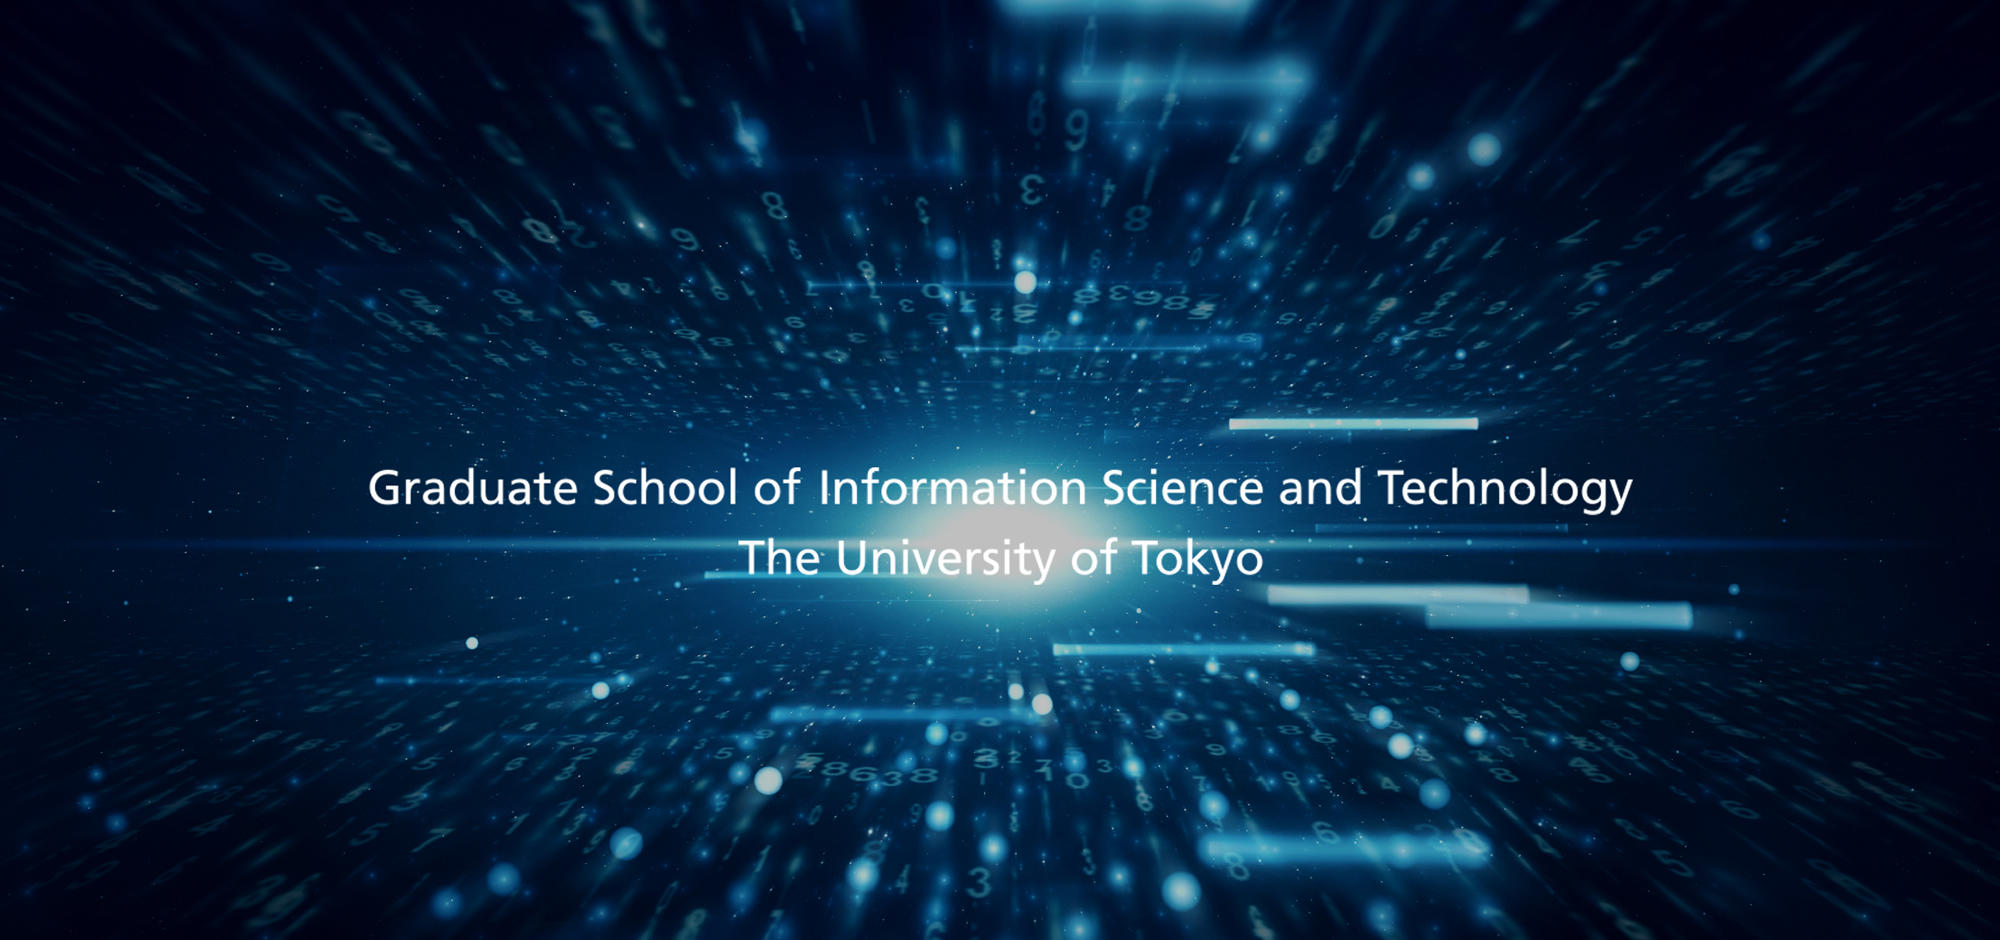 Graduate School of Information Science and Technology The University of Tokyo